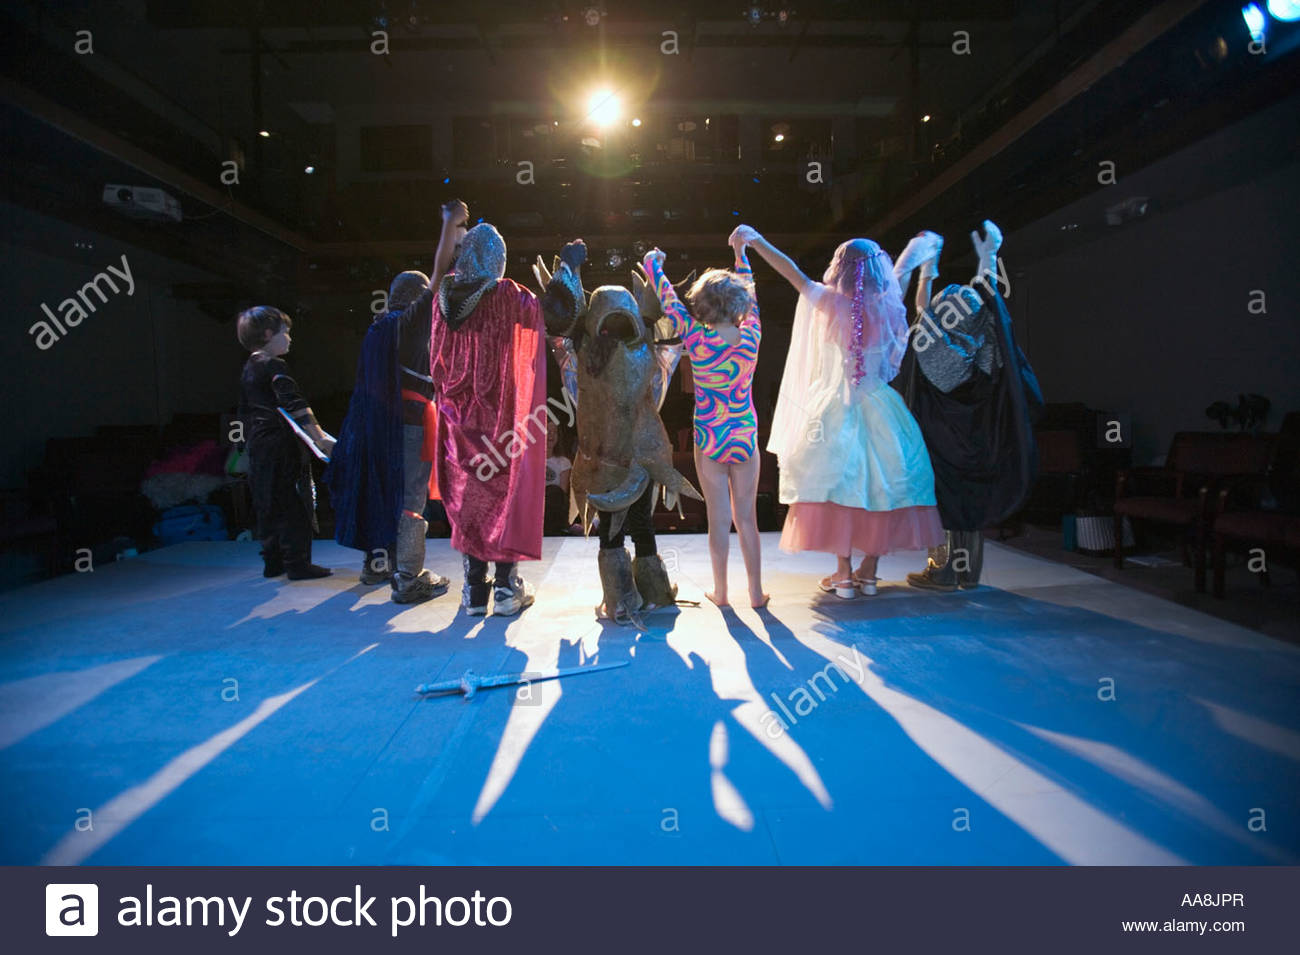 Child actors bowing to audience - Stock Image